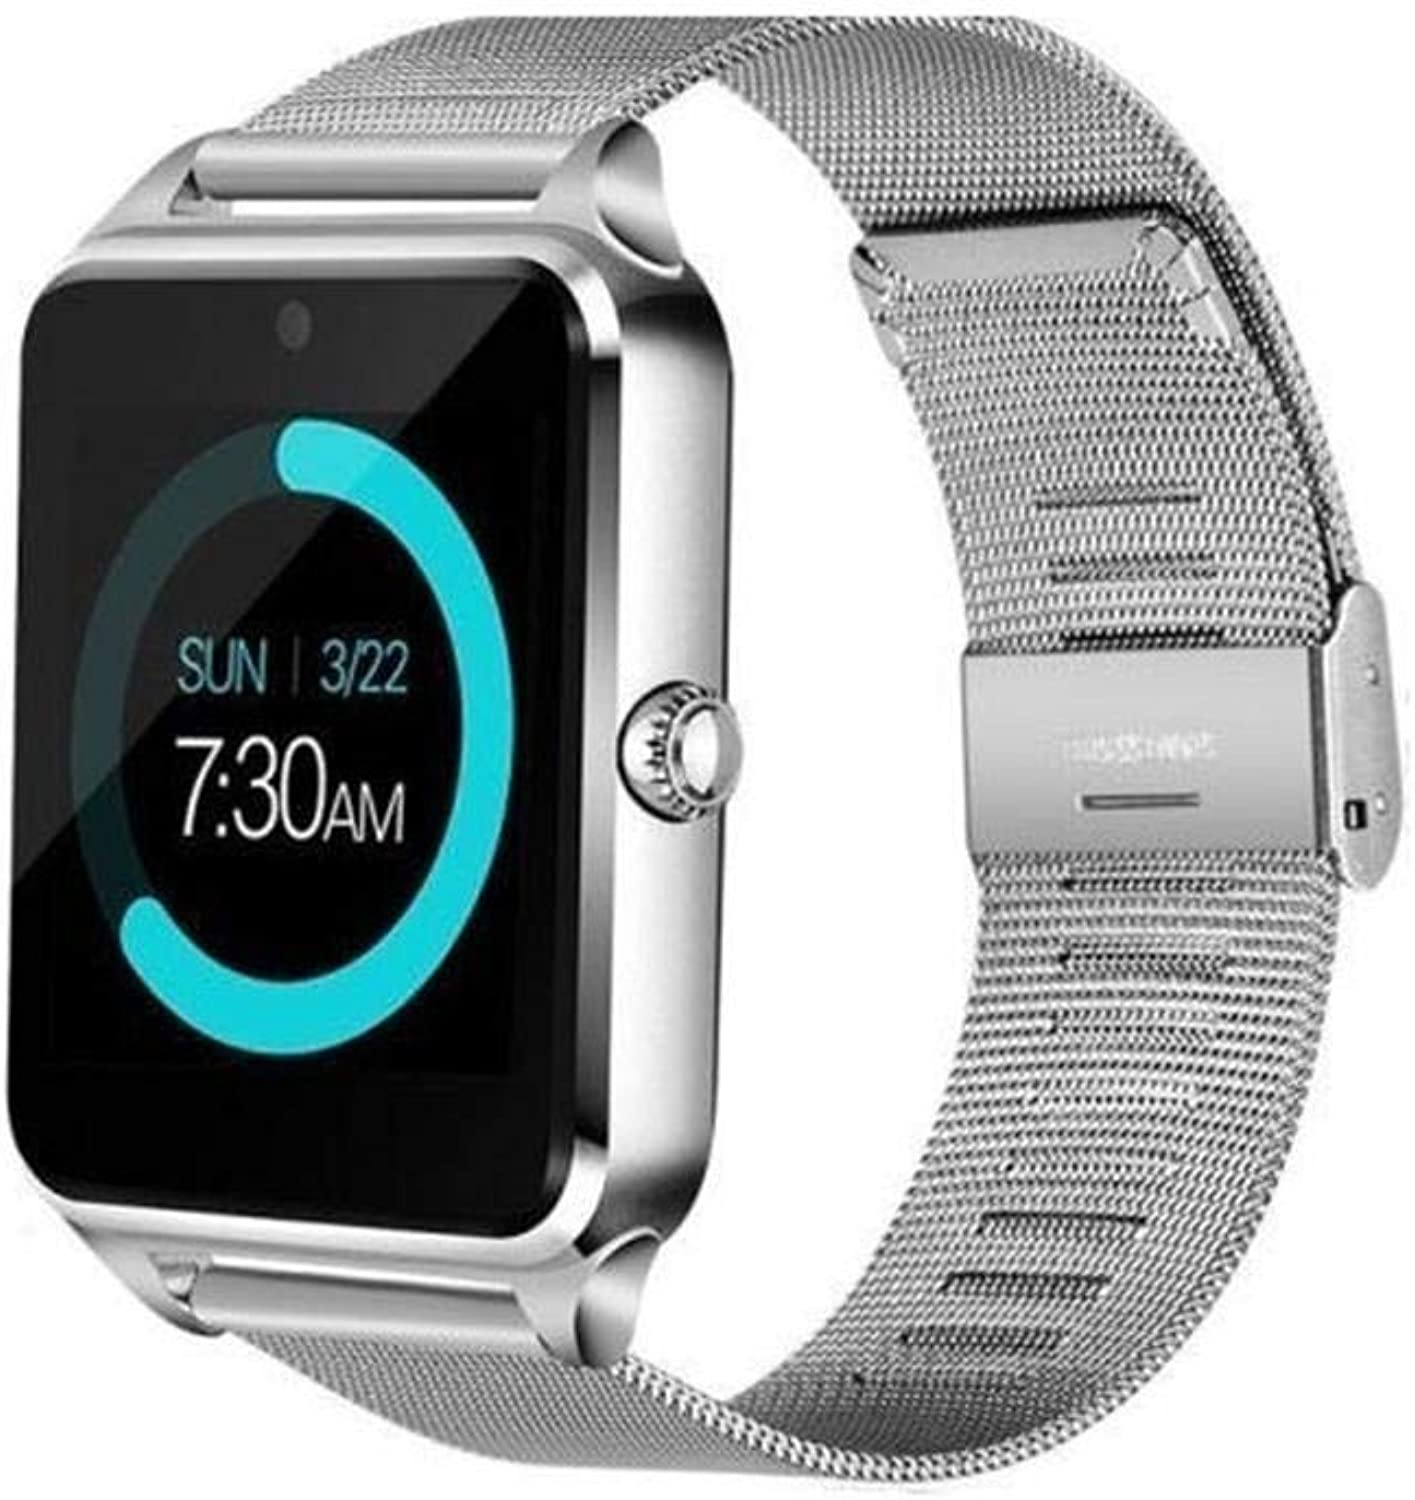 ADOSOUL blueetooth Smart Watch Phone Wristwatch with Pedometer Sedentary Remind Sleep Monitor Camera